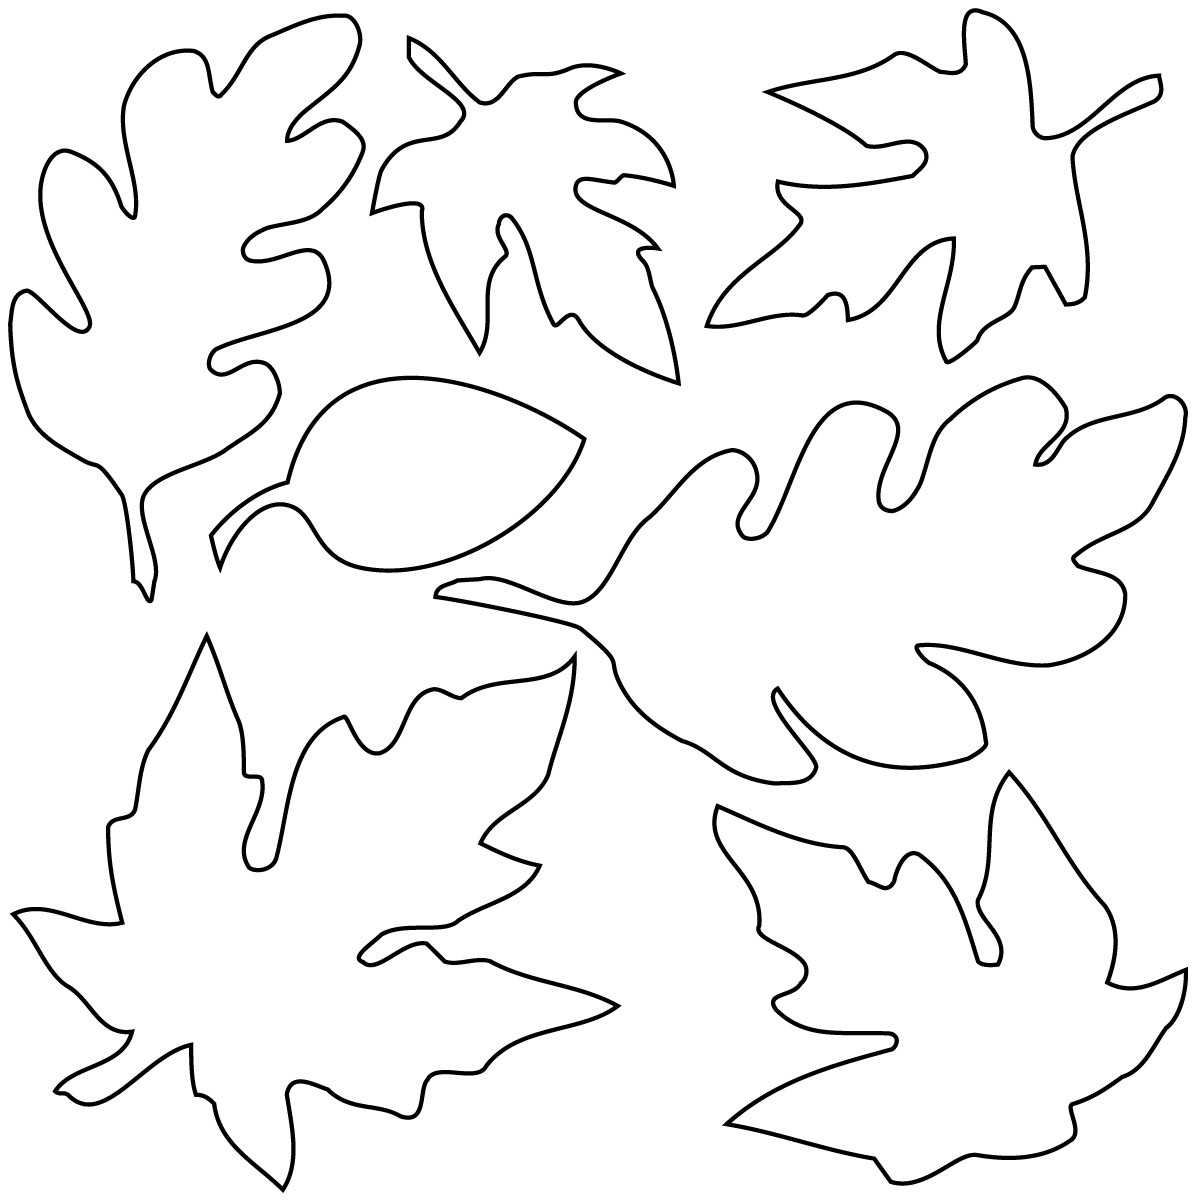 Leaves  black and white black and white leaves clipart